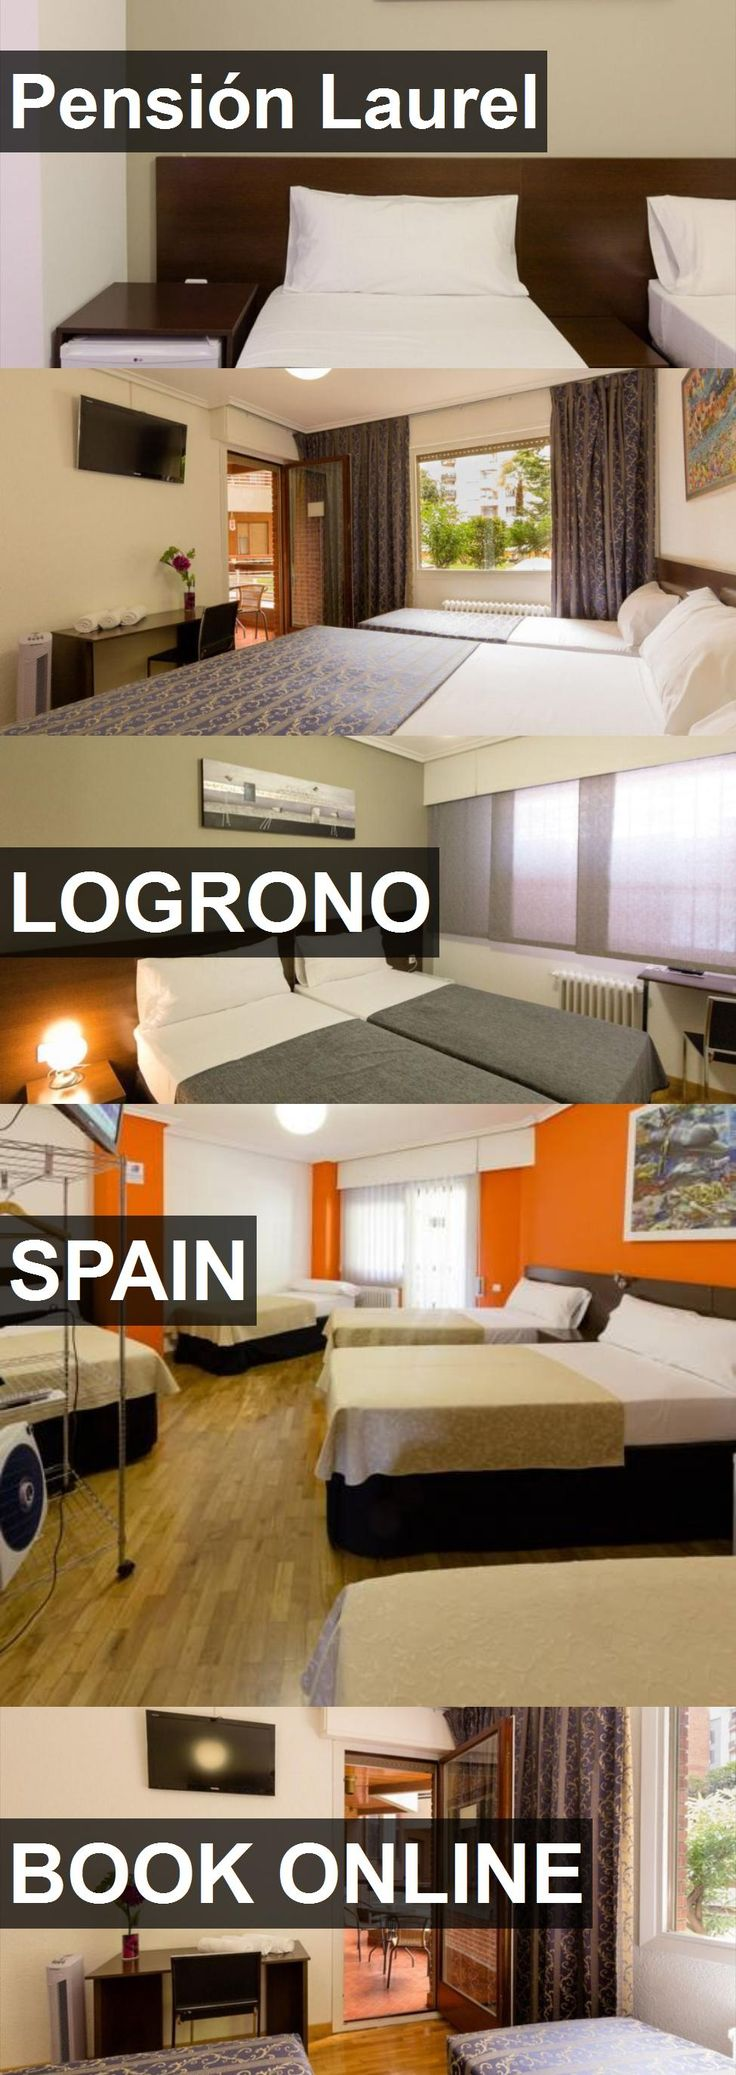 Hotel Pensión Laurel in Logrono, Spain. For more information, photos, reviews and best prices please follow the link. #Spain #Logrono #travel #vacation #hotel